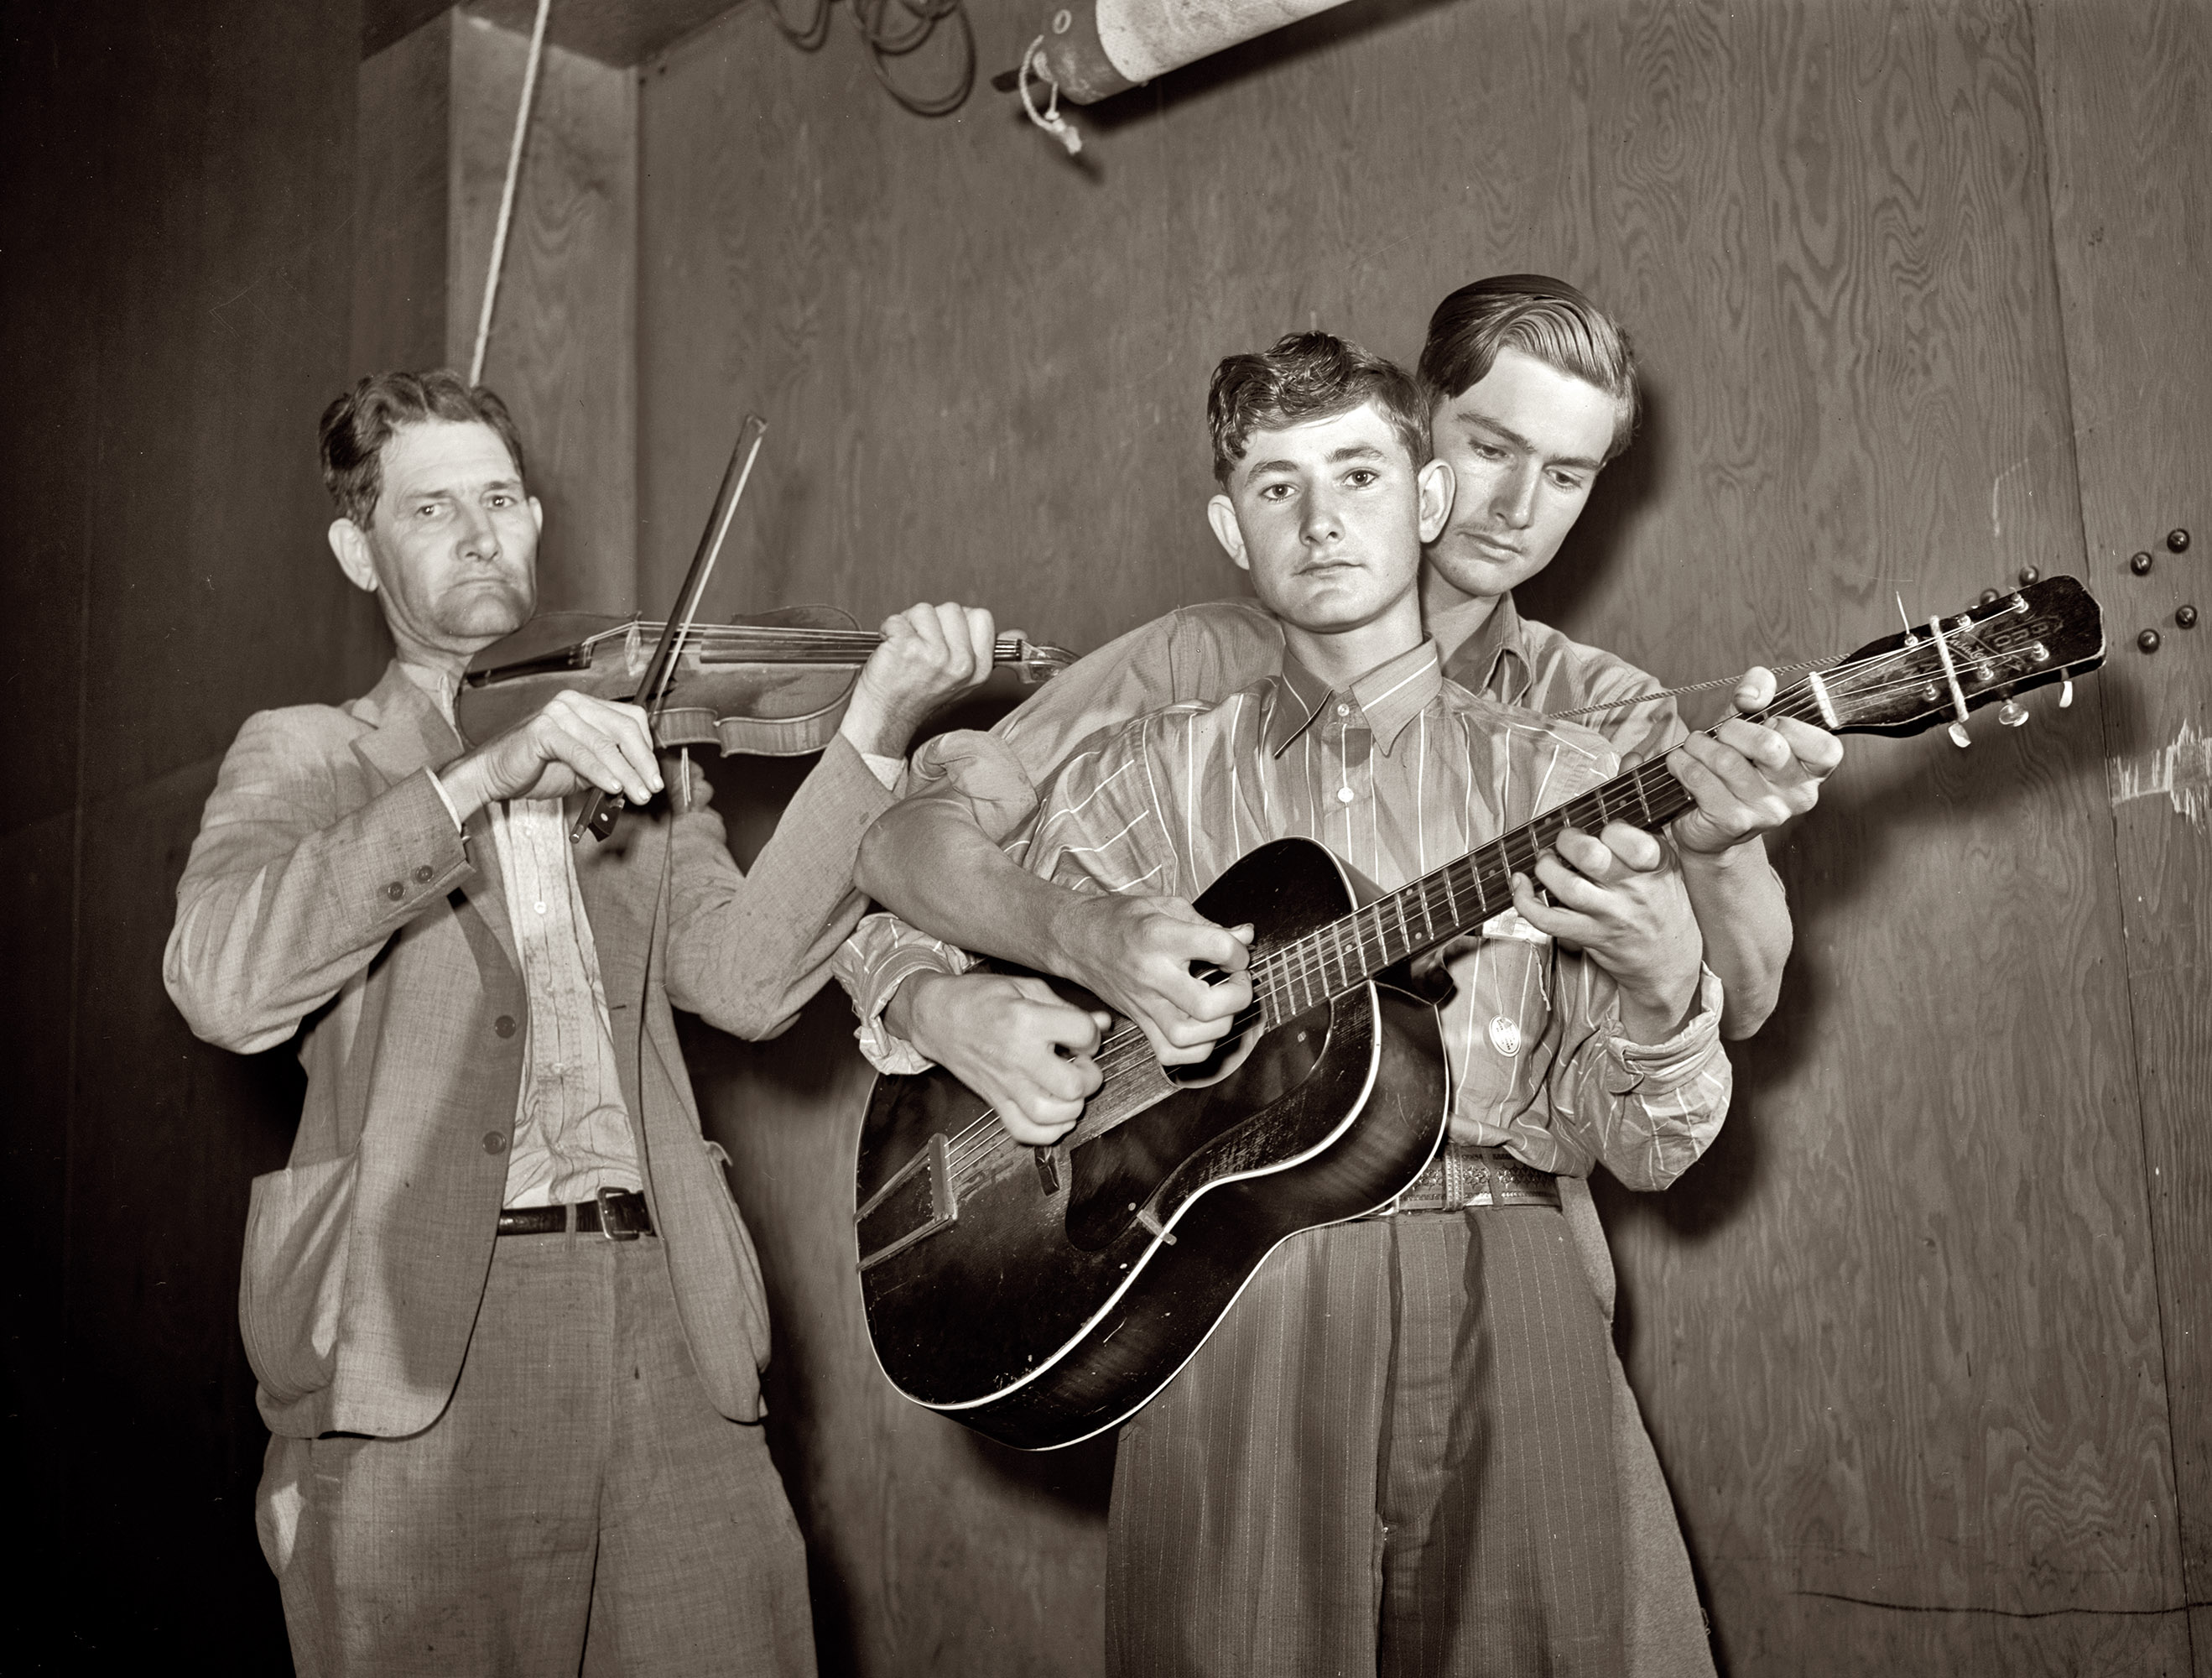 Weslaco, Texas. The  musical Drake family,  performing at a barn dance in the Farm Security Administration's Mercer G. Evans camp, February 1942. The fiddler is Nathan Drake, the younger boy is Jasper  Sleepy  Drake, and behind him is brother Weldon Drake.